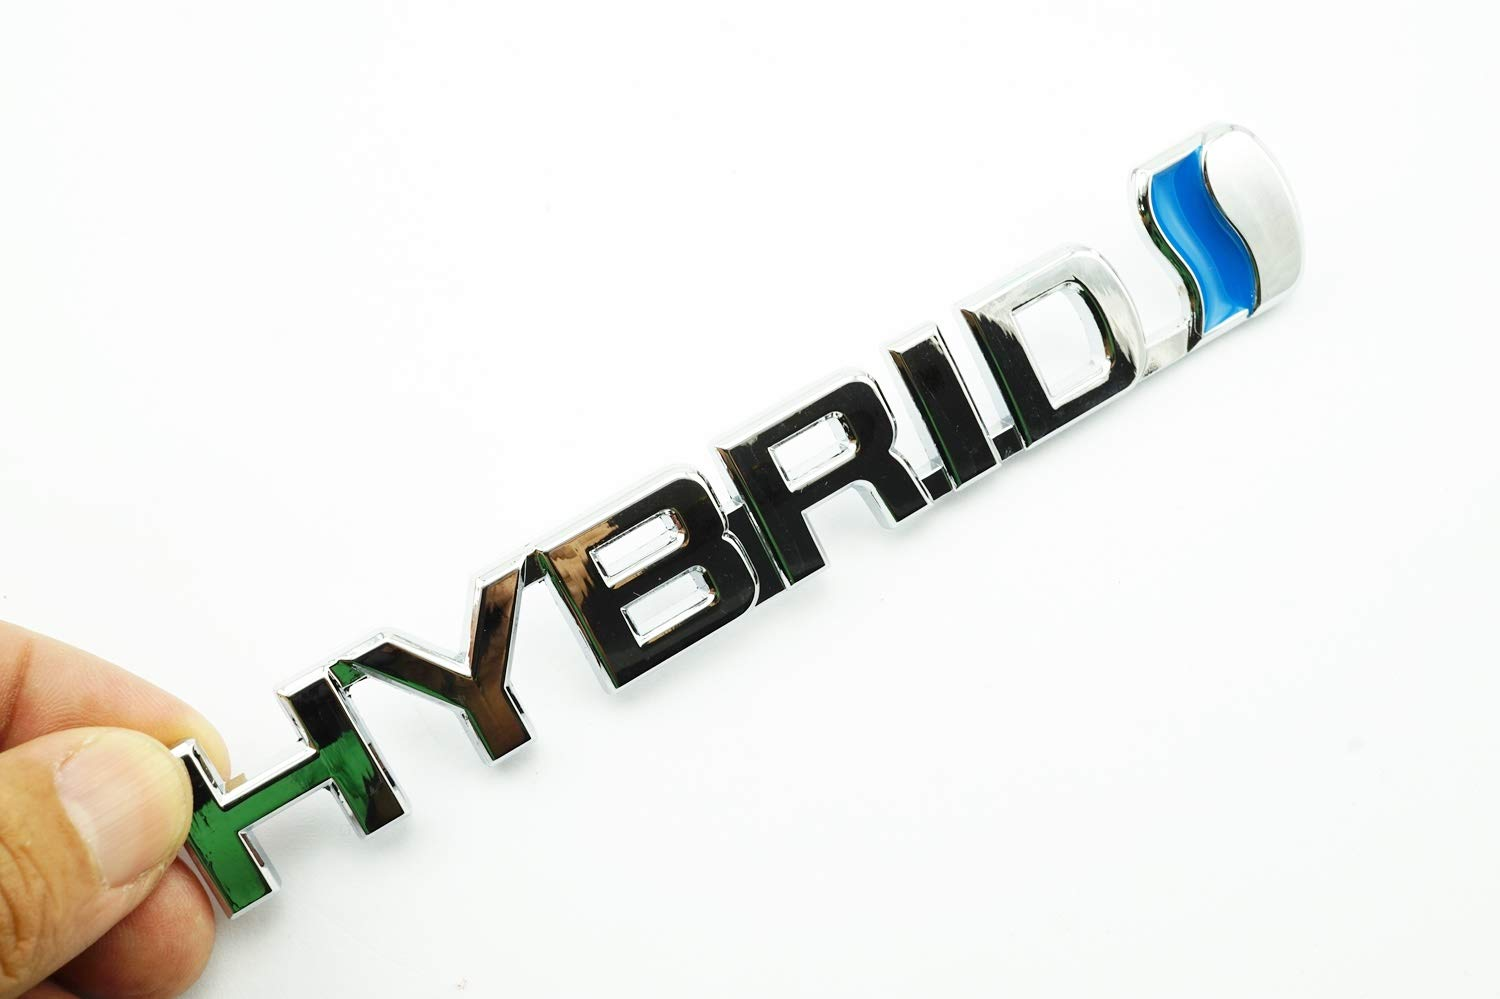 PB-Autoparts HYBRID Chrome Metal Logo Emblem Badge 3D Sticker Size 15.0x2.0cm